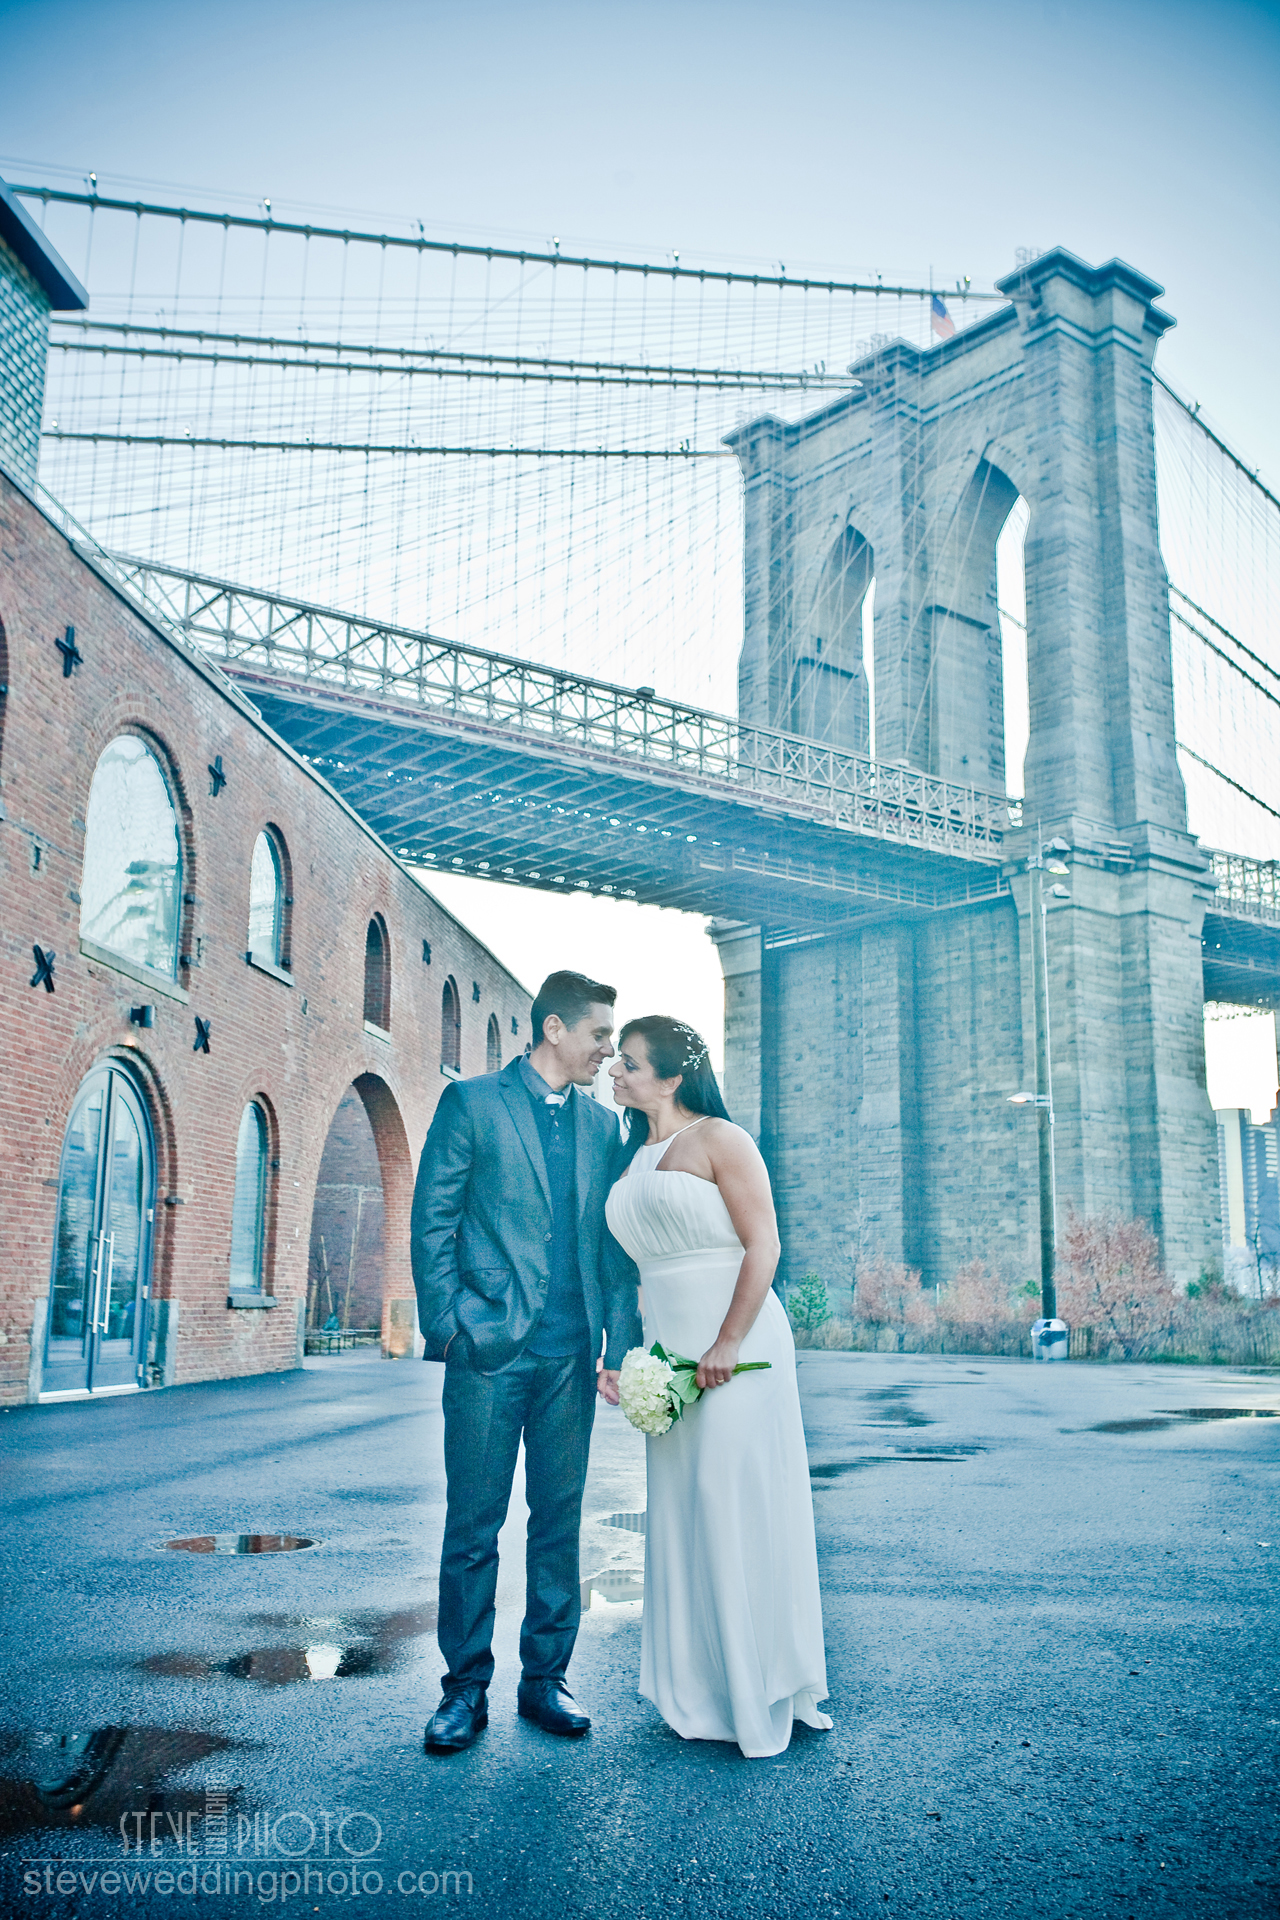 New York City Elopement. New York City, Dumbo Brooklyn, Brooklyn Bridge Park, Wedding Photo, Elopement Photo. steveweddingphoto.com -_MG_4430